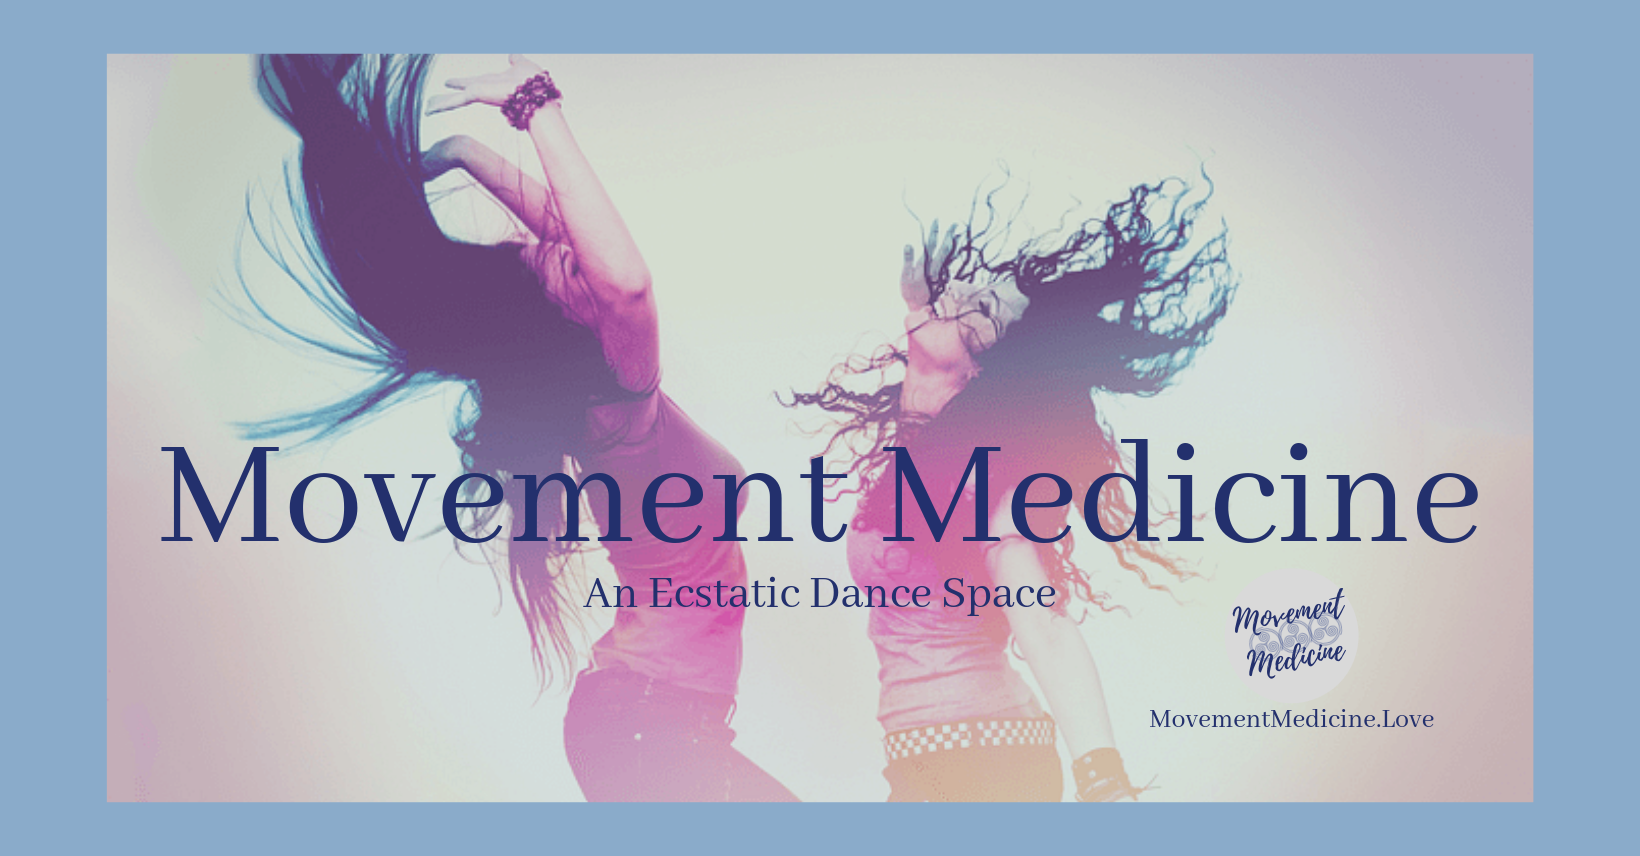 Movement Medicine Nashville